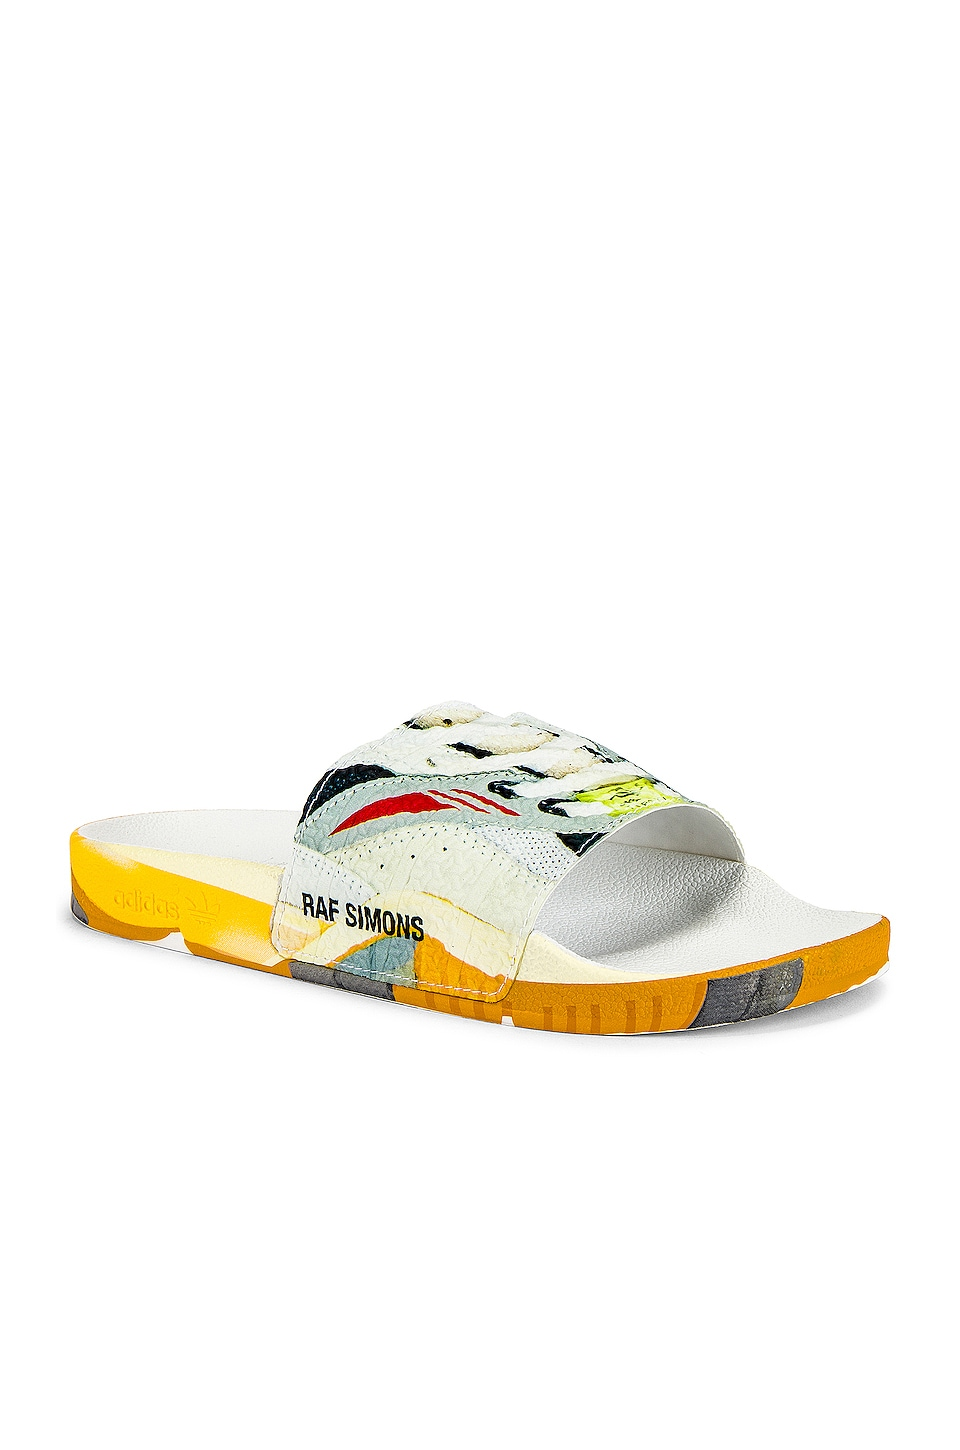 adidas by Raf Simons Torsion Adilette Slides in White & Multi